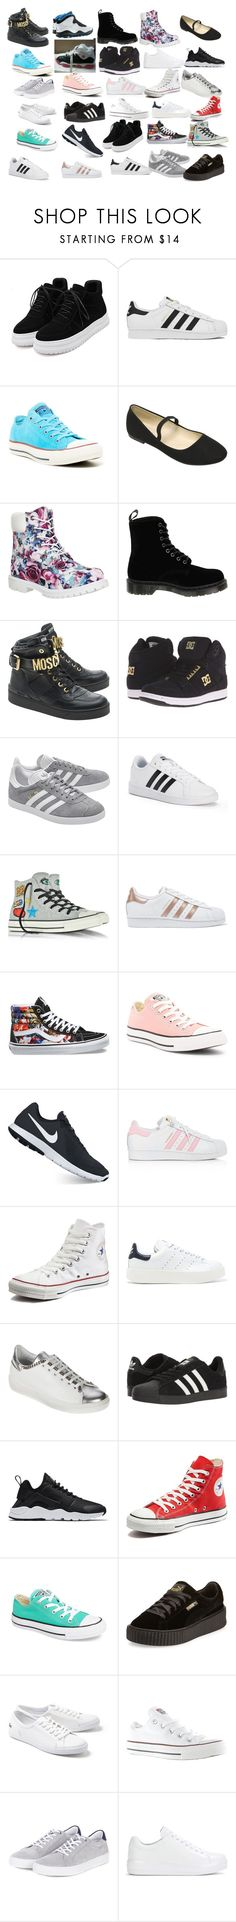 """""""All the shoes in my items"""" by royalty-fashion-love-gymnastics ❤ liked on Polyvore featuring WithChic, adidas, Converse, Timberland, Dr. Martens, Moschino, DC Shoes, adidas Originals, Vans and NIKE"""